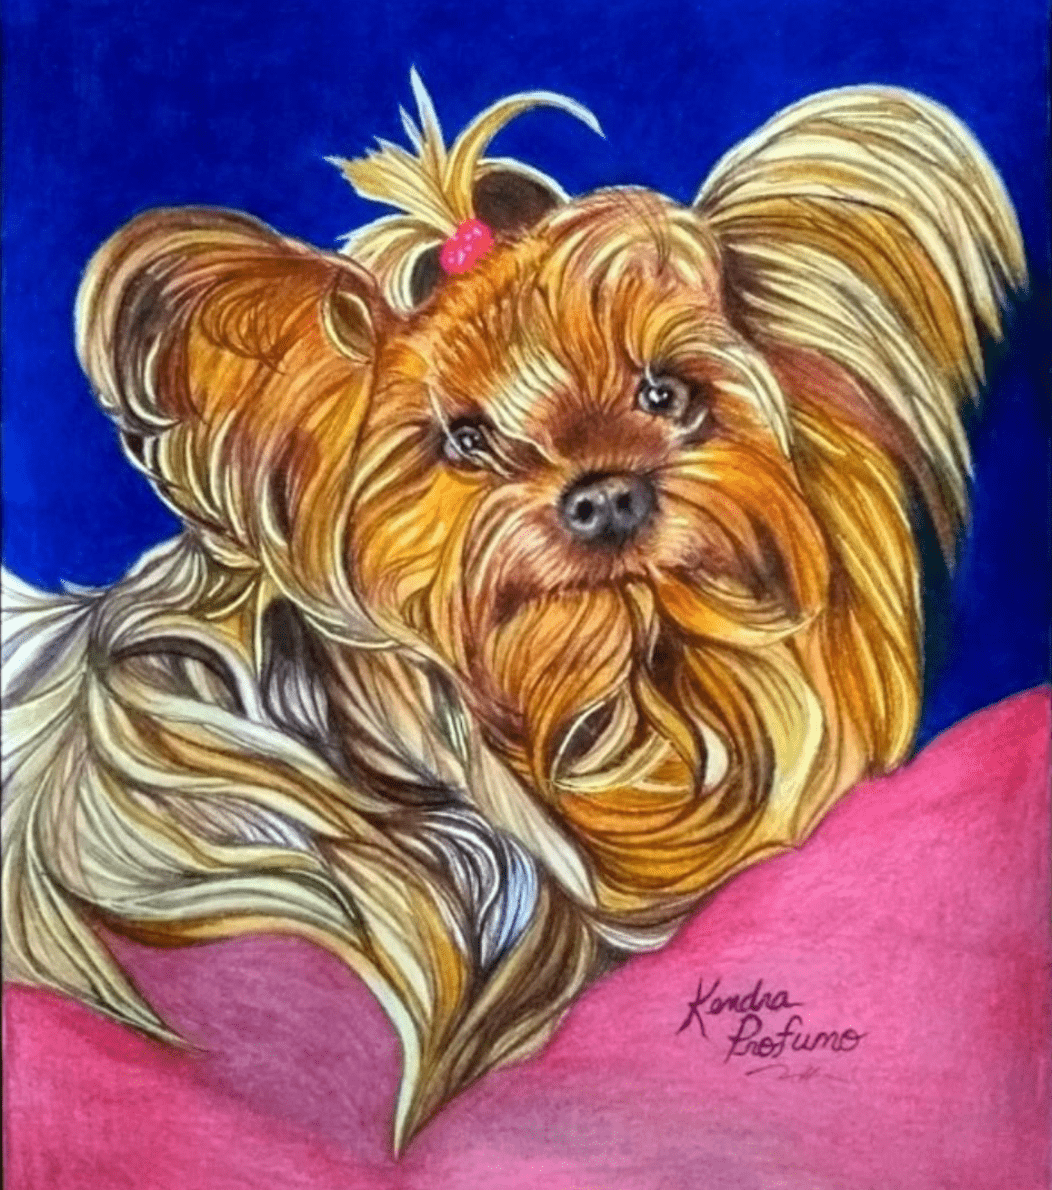 Kendra Profumo Pet Portrait